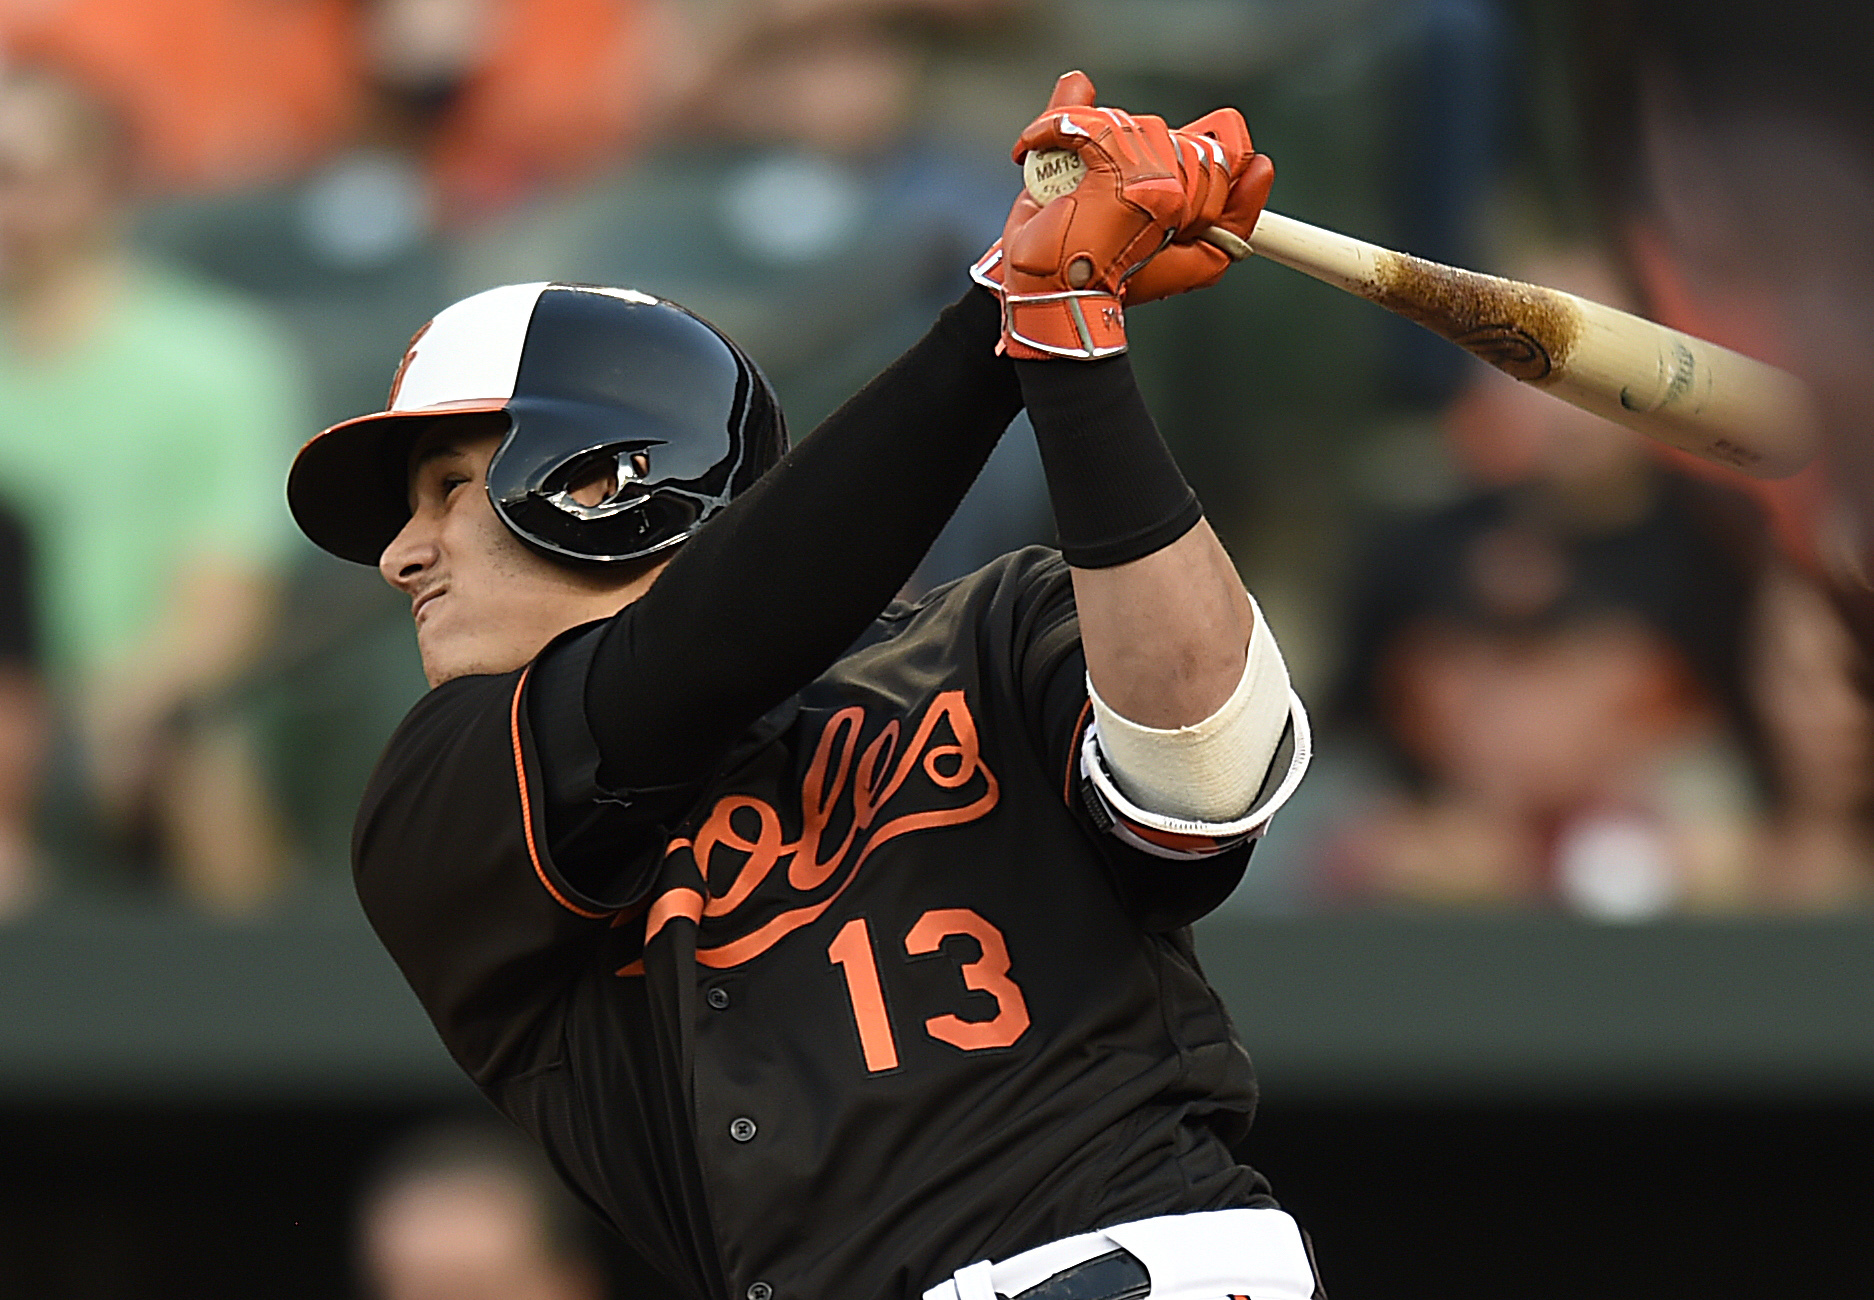 Baltimore Orioles' Manny Machado follows through on an RBI-single against the Toronto Blue Jays in the first inning of a baseball game, Friday, June 17, 2016 in Baltimore. (AP Photo/Gail Burton)